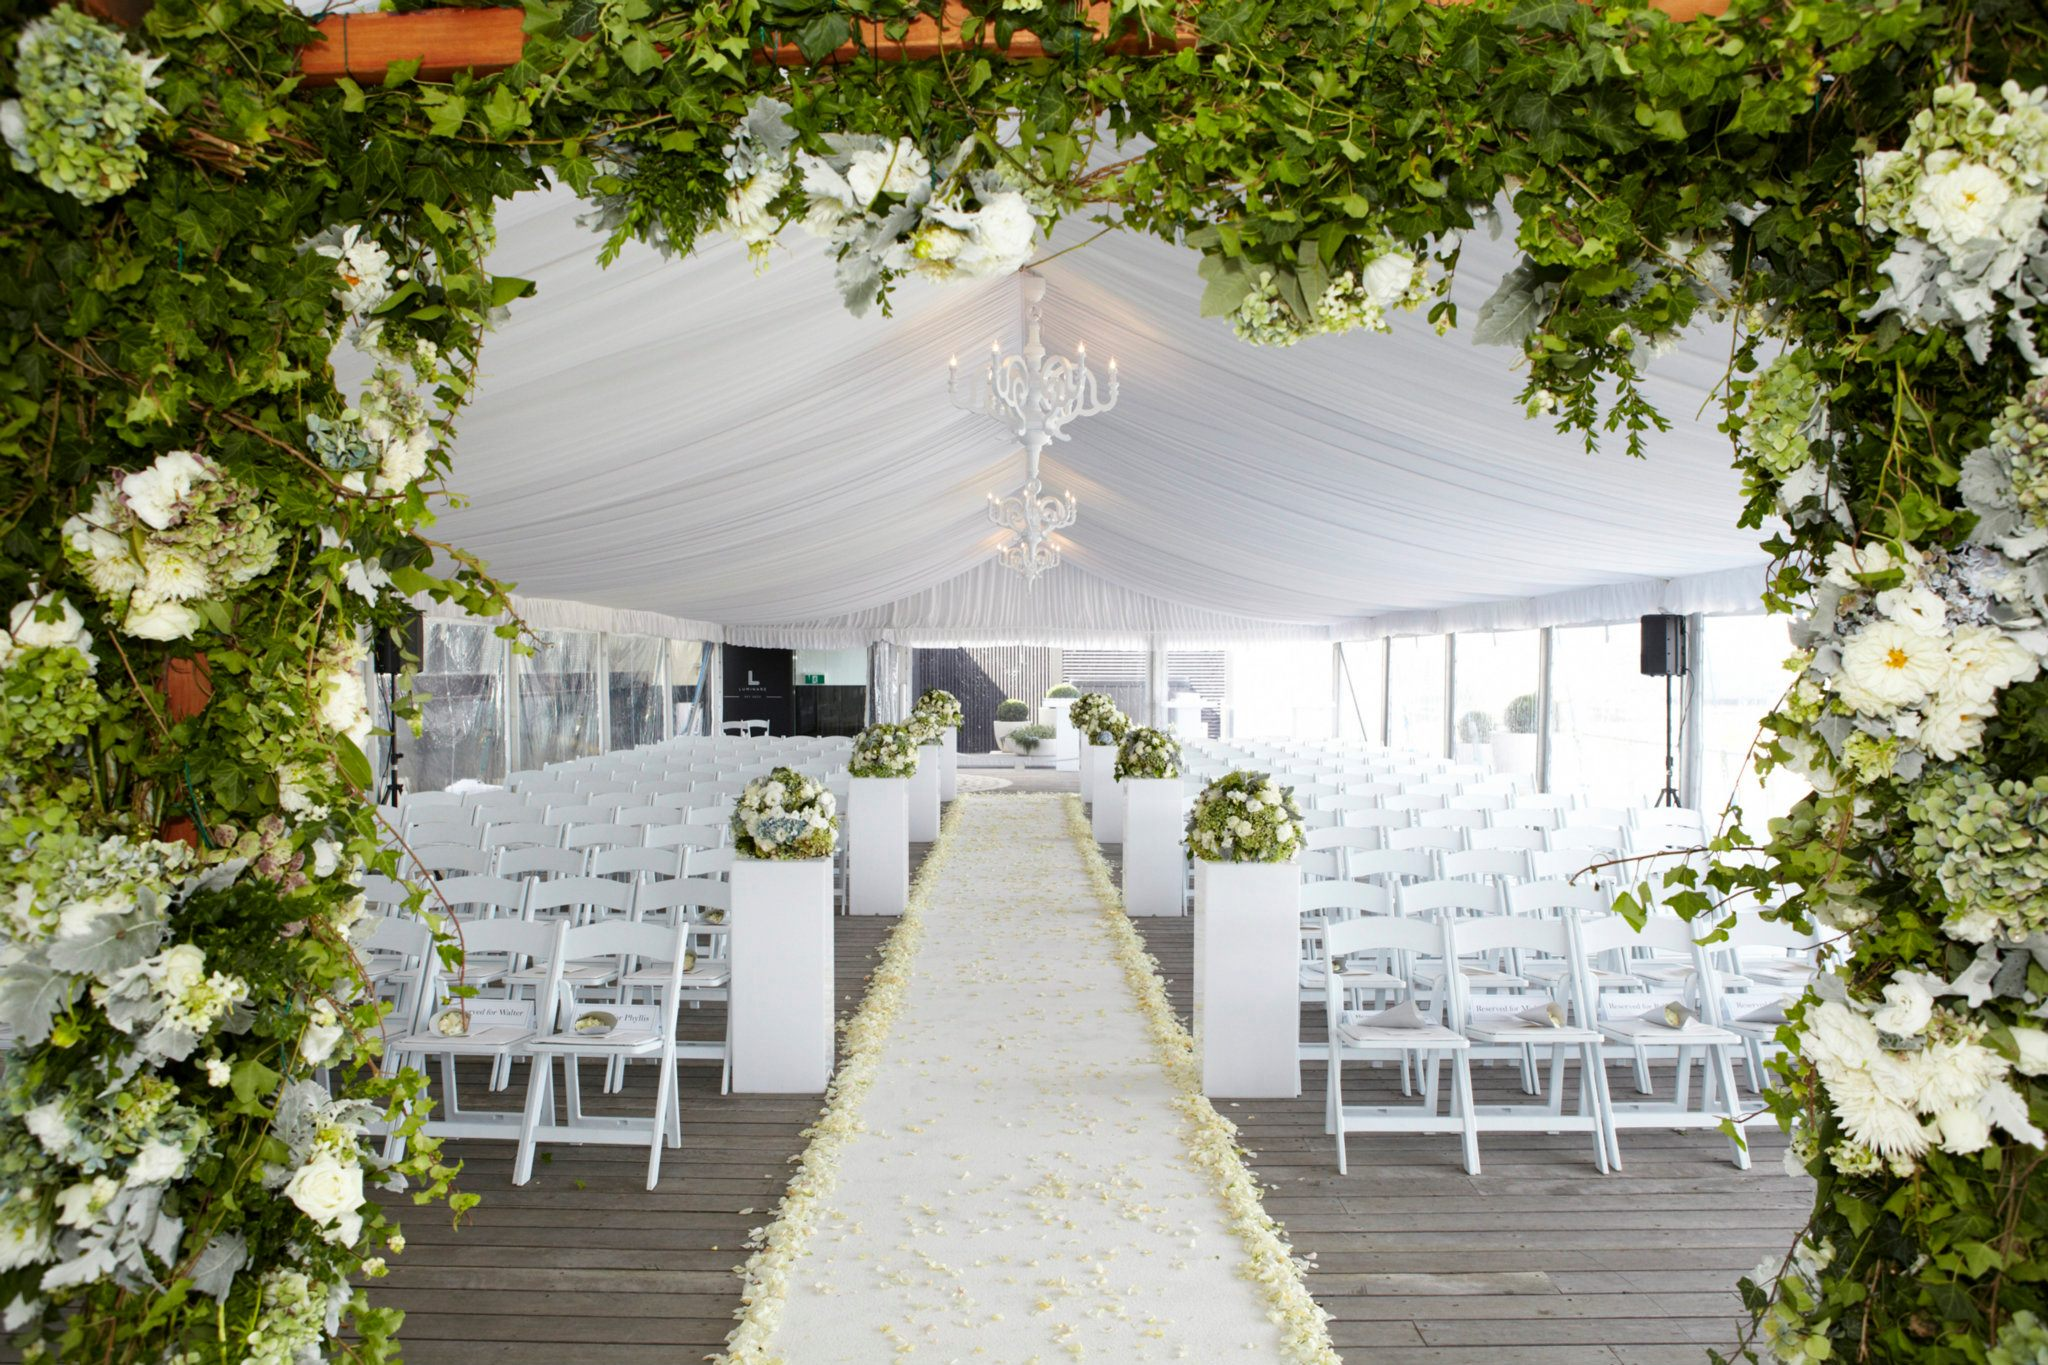 Recent events that used Folding Chairs Padded Folding Chairs Hire for Outdoor Weddings and Parties in Sydney. Tiffany Wedding Chair Hire Melbourne. Home Design Ideas